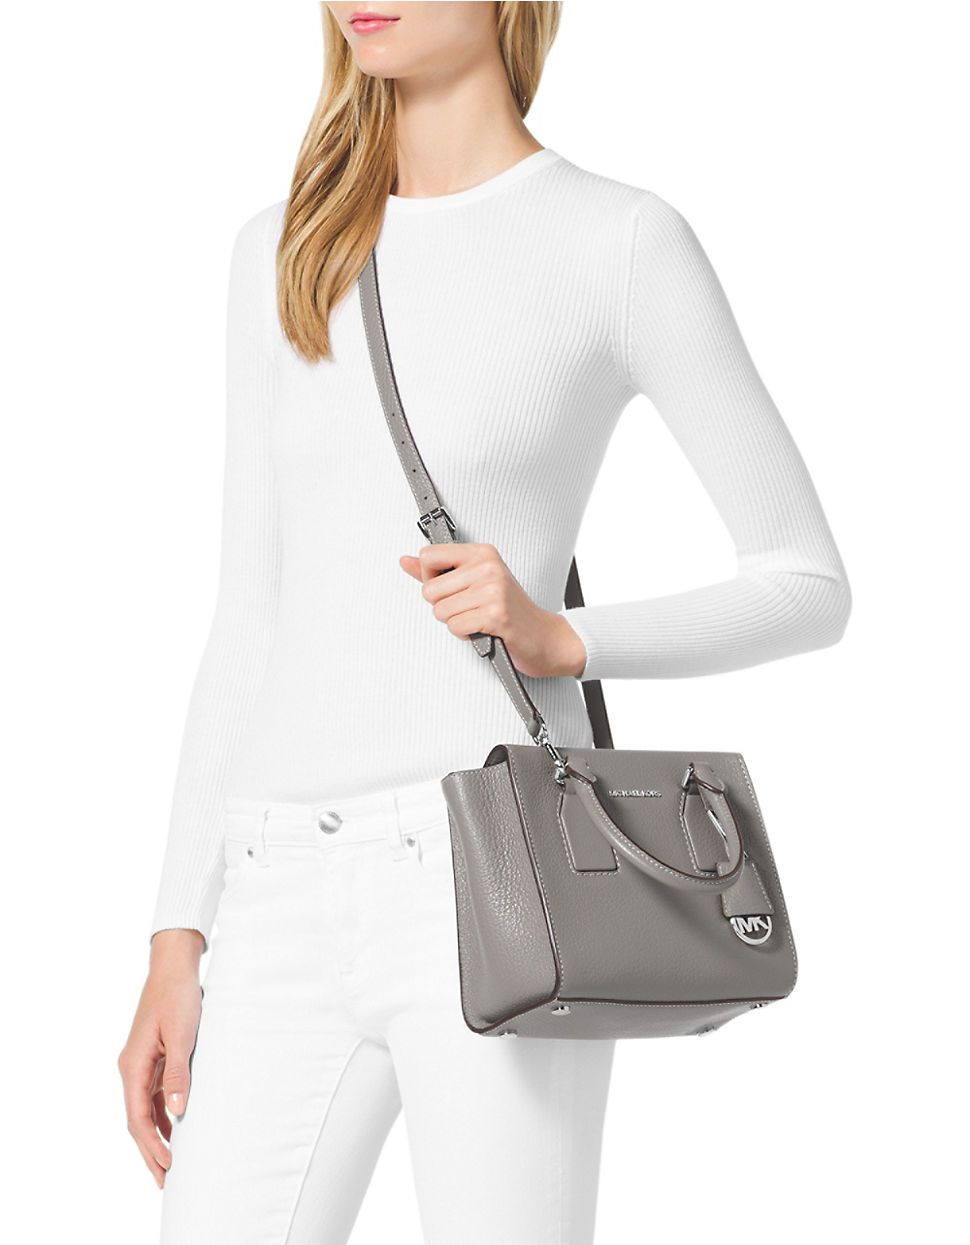 66b8e0da1789 Michael michael kors Selby Medium Leather Messenger Bag in White (Pearl  Grey)